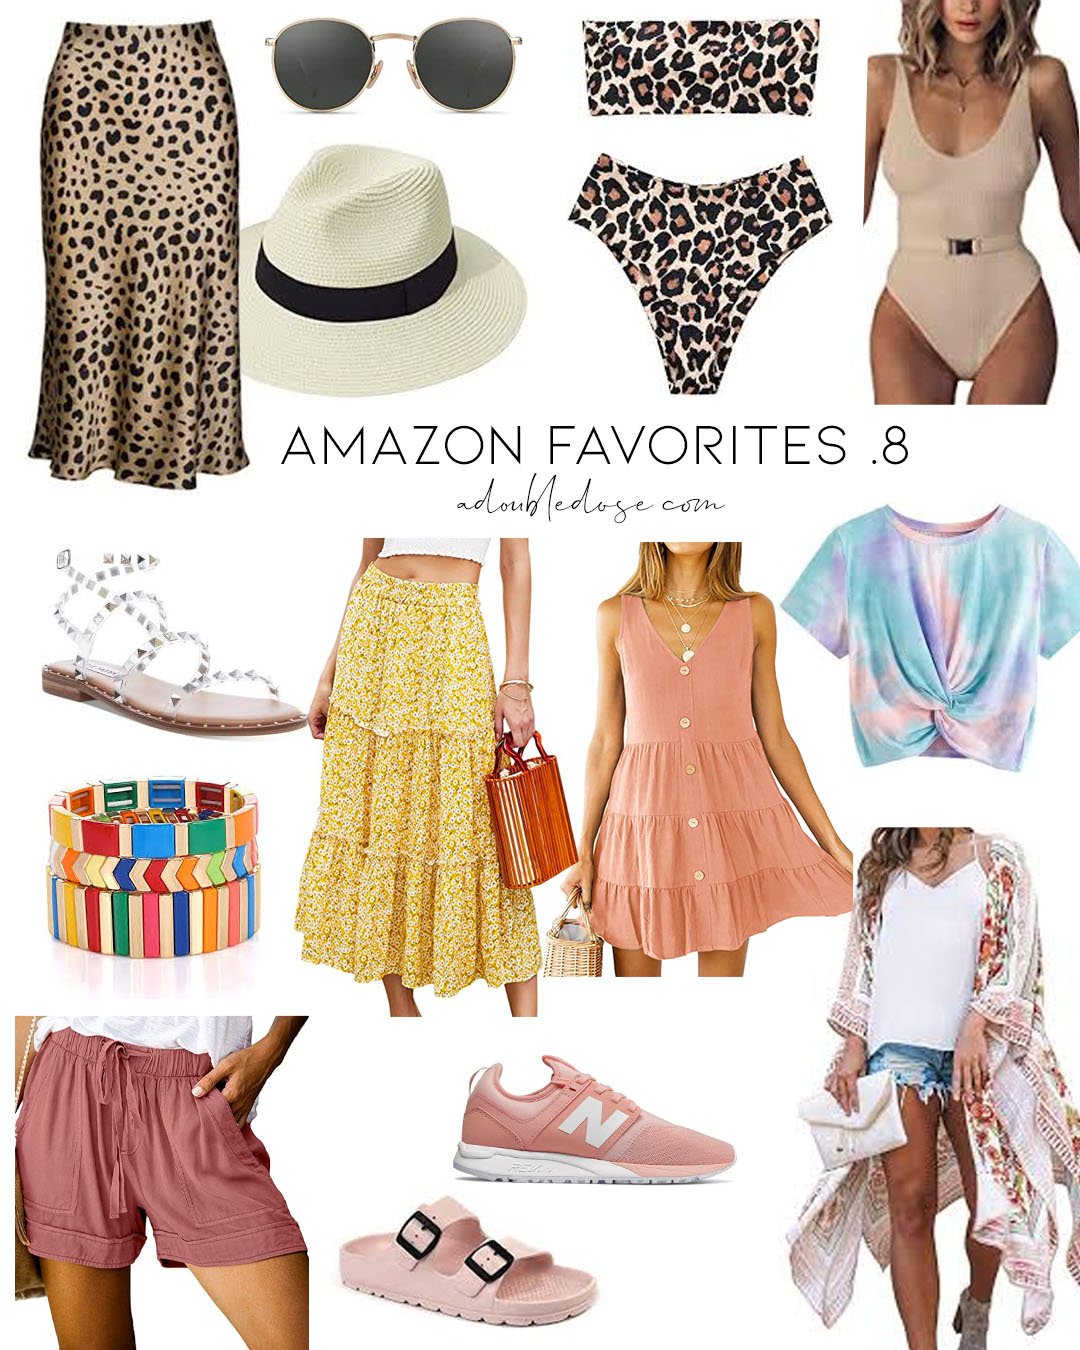 amazon favorites .8: lifestyle and fashion blogger alexis and samantha belbel share their amazon fashion favorites for summer 2020 | adoubledose.com